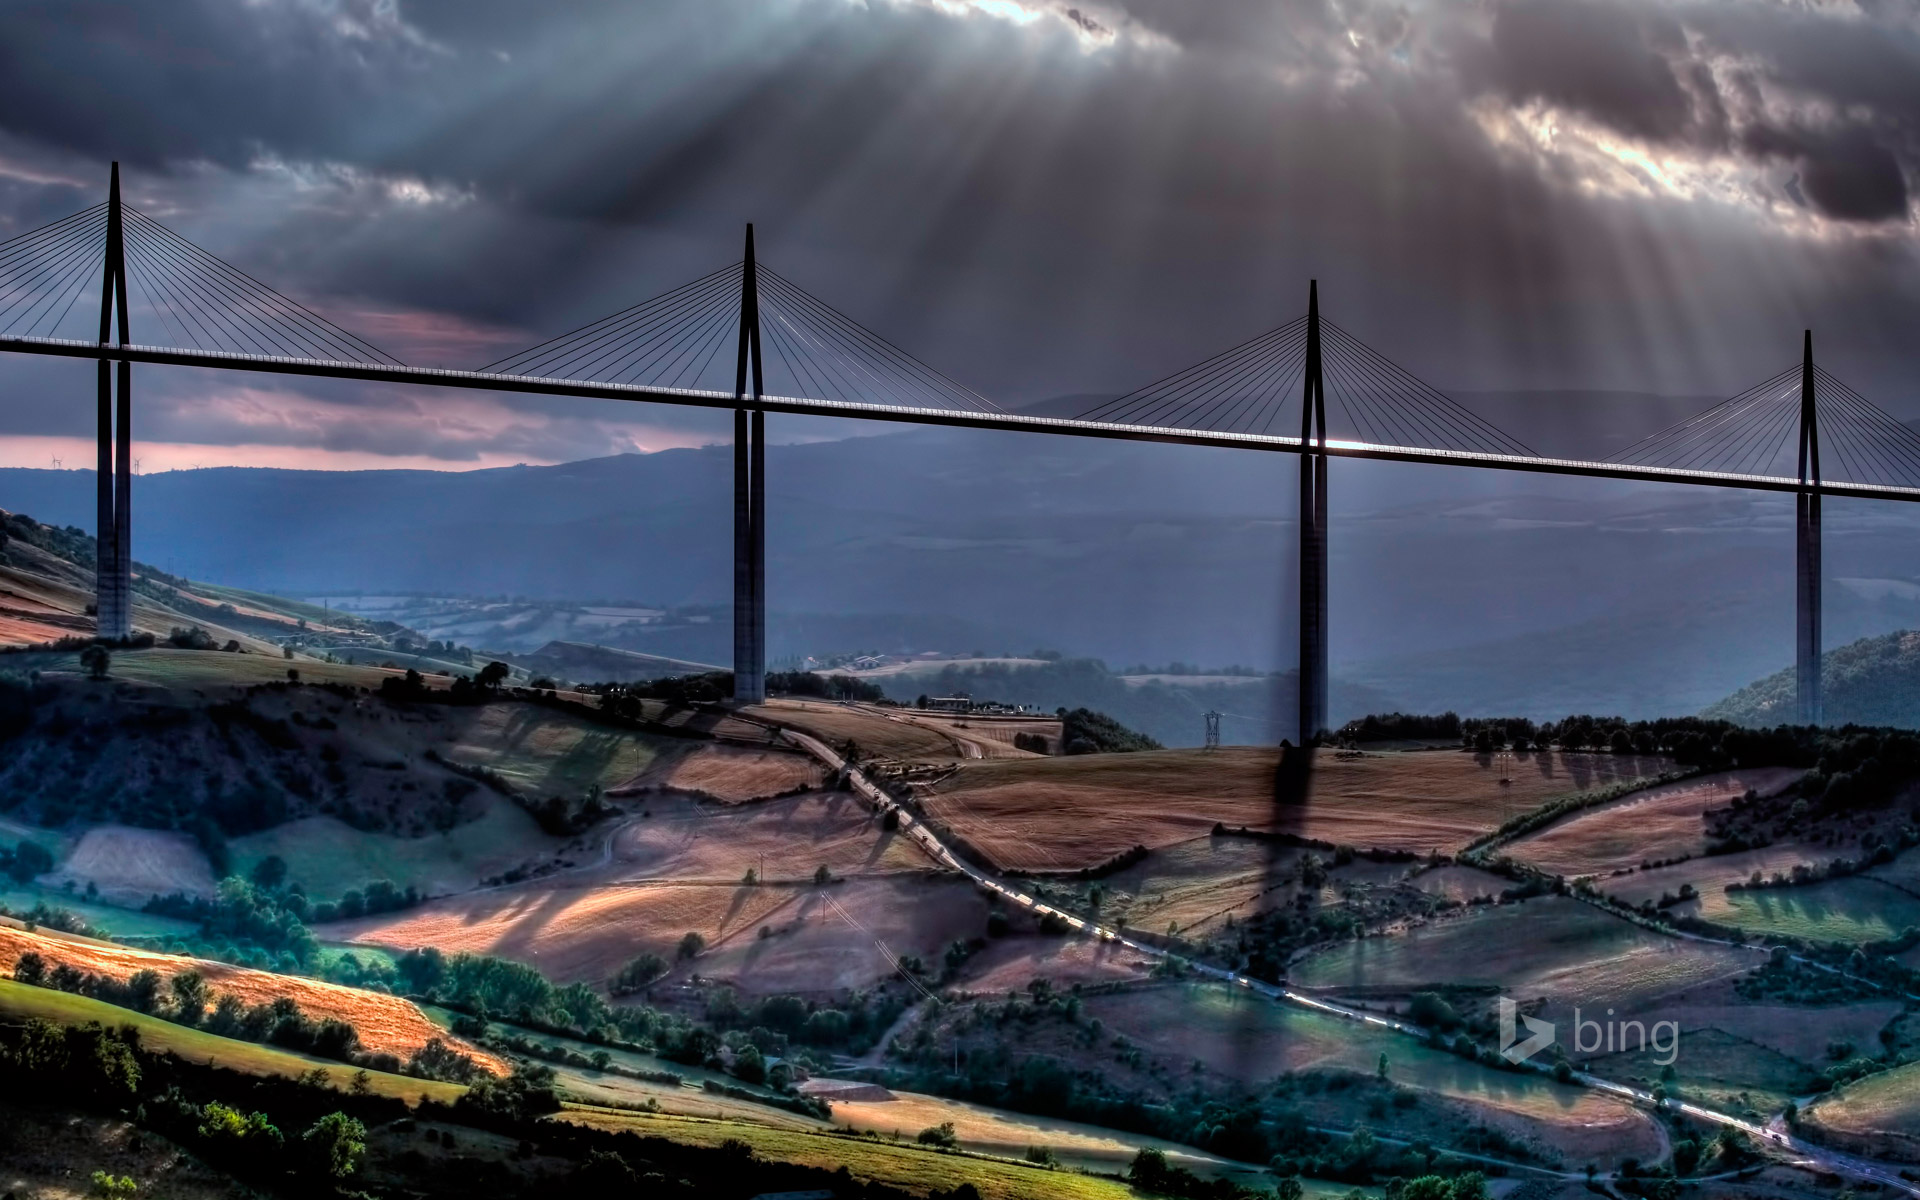 Millau Viaduct over the Tarn River Valley near Millau, France